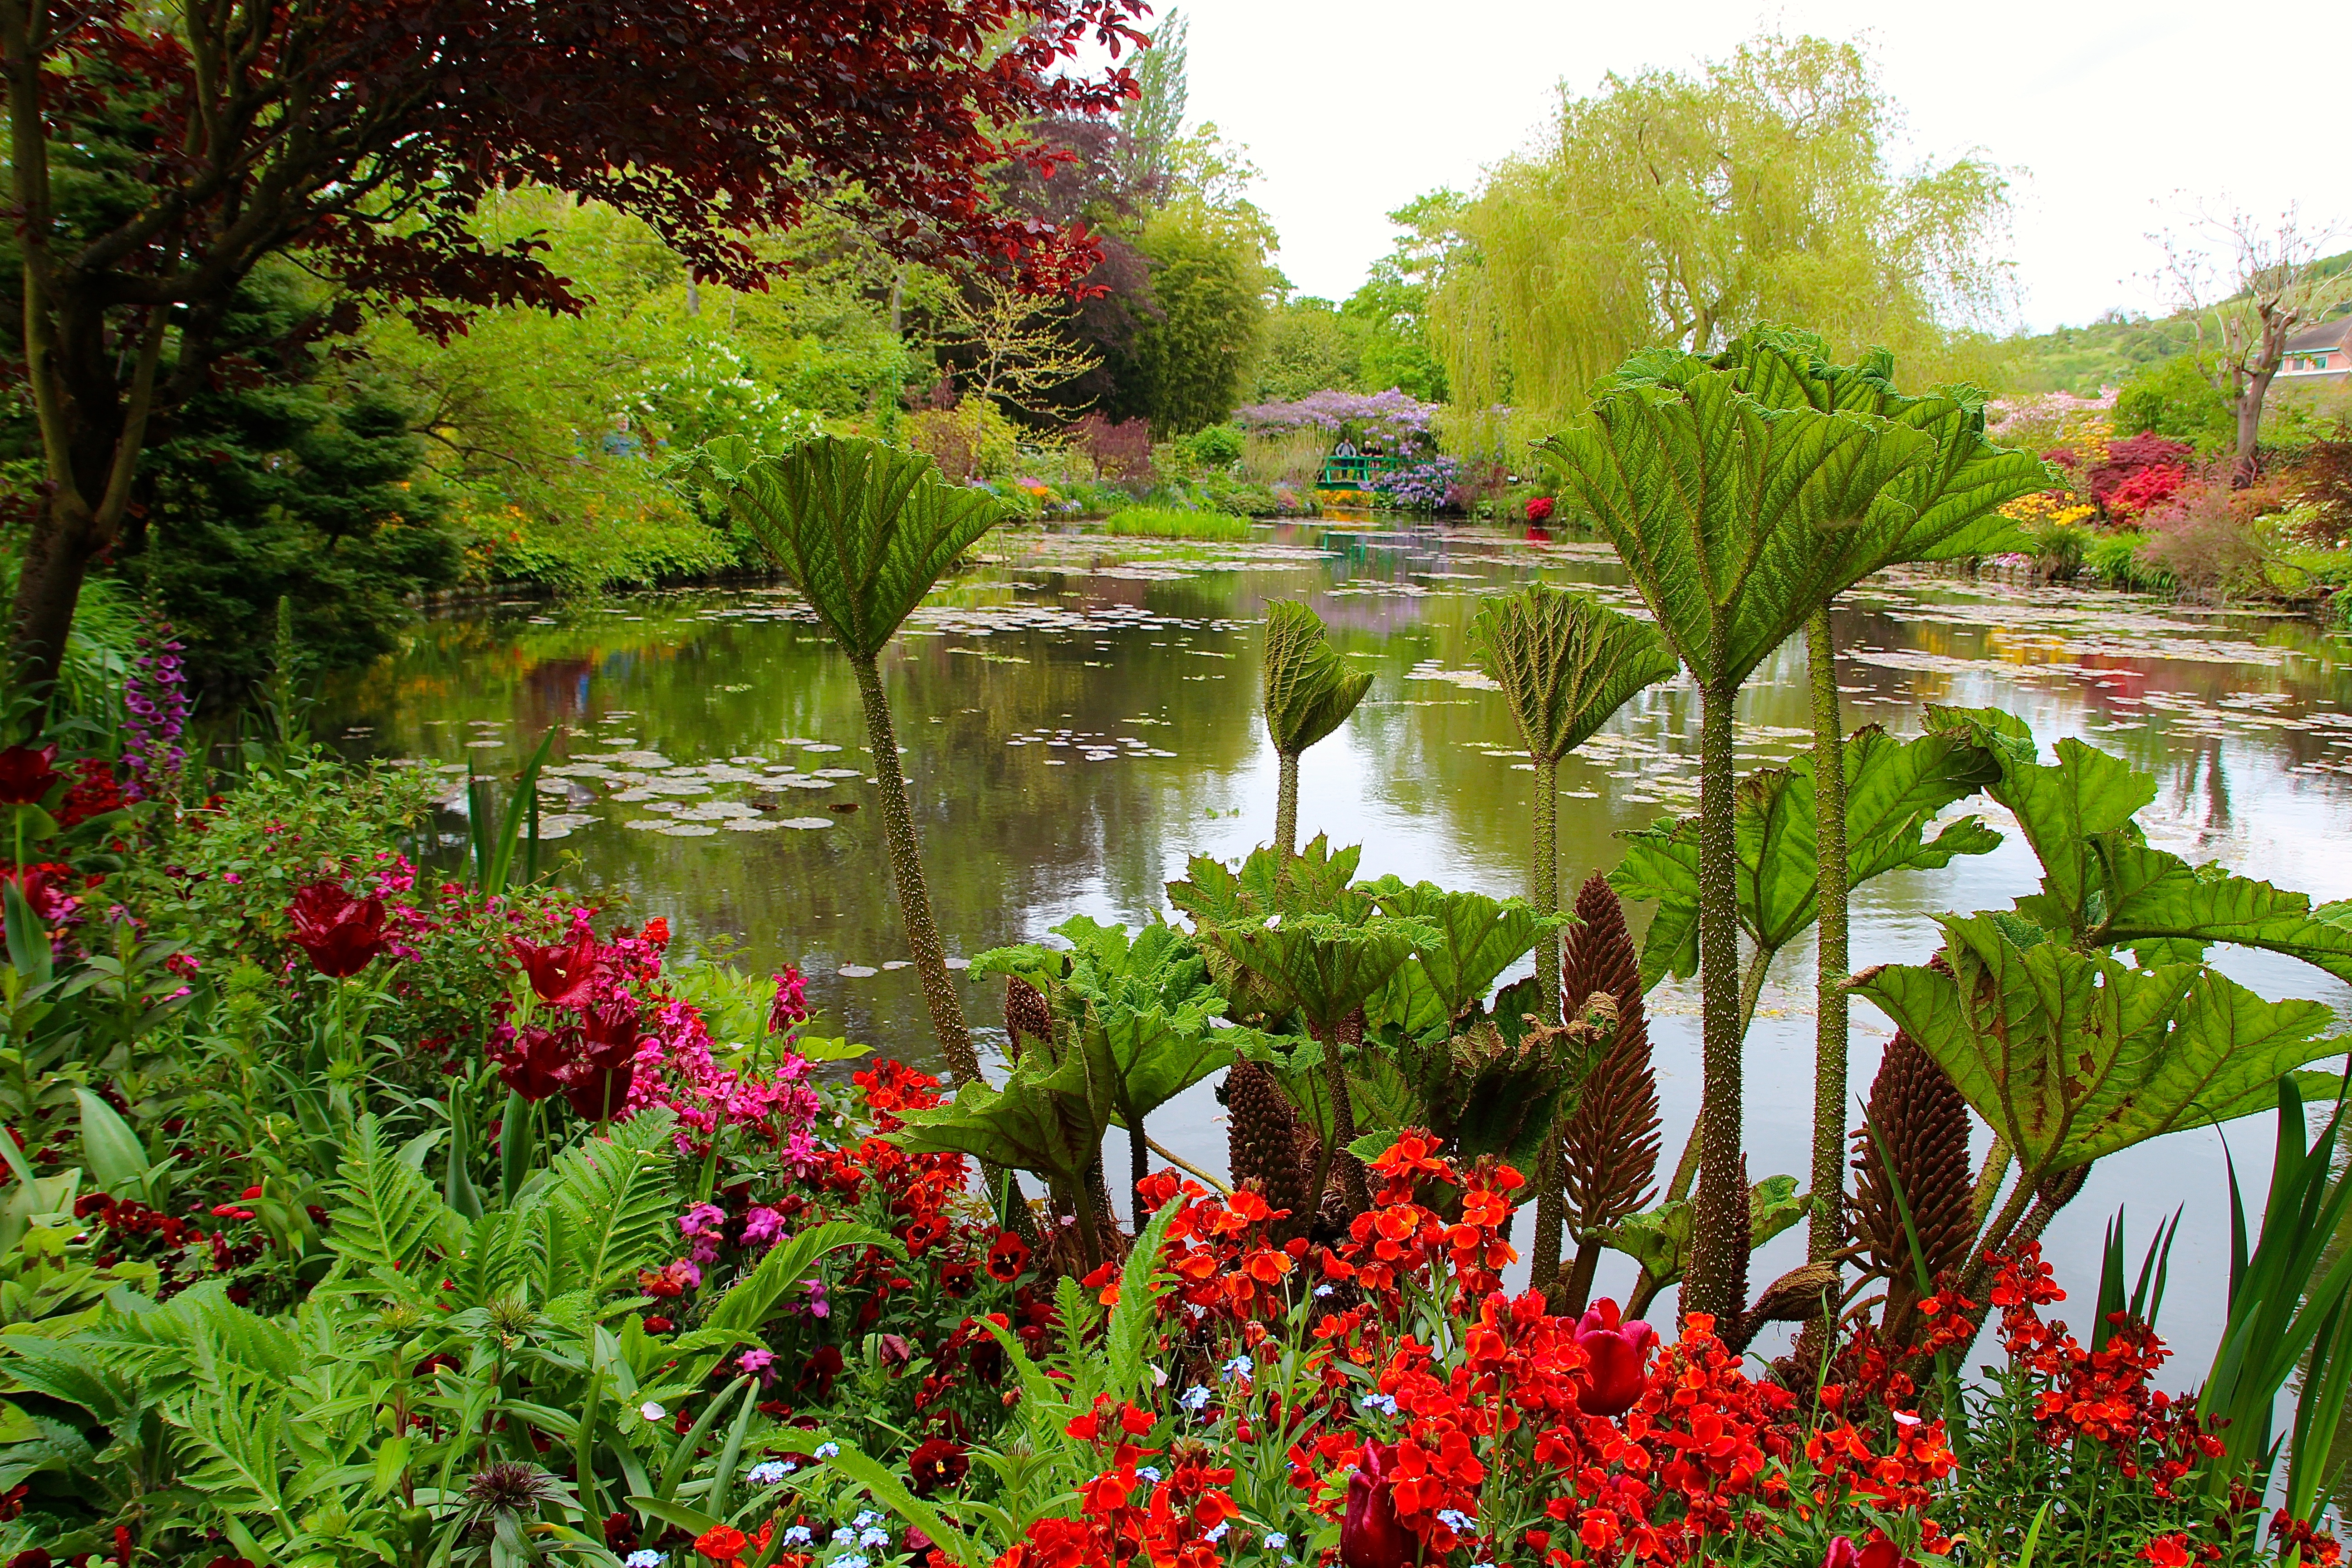 Spring flowers blooming at Giverny. France. 05.09.16. 26